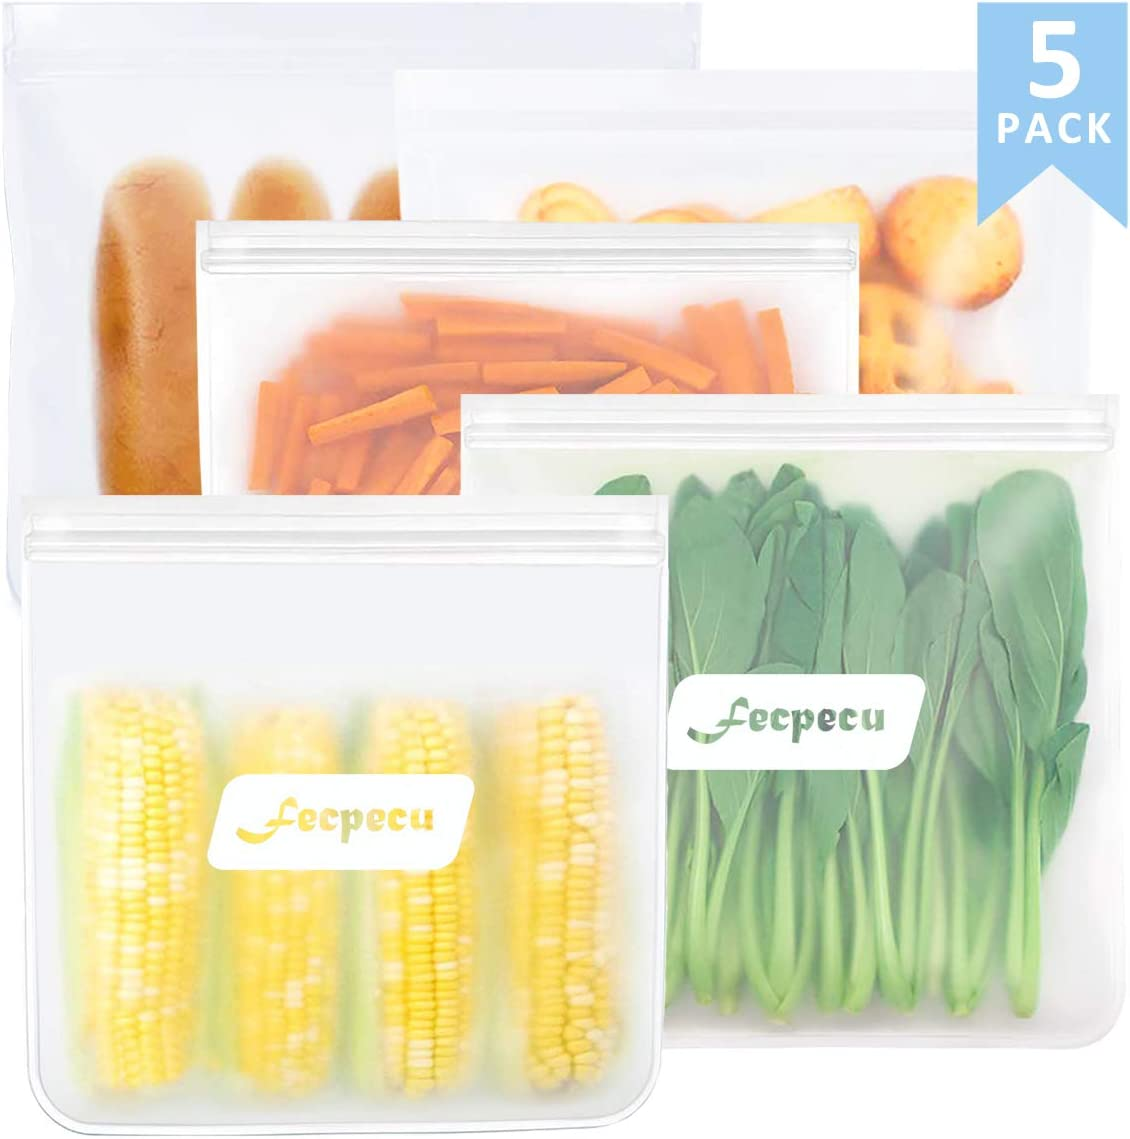 Reusable Gallon Freezer Bags – 5 Packs 1 Gallon Ziplock Leakproof Reusable Gallon Bags EXTRA THICK for Marinate Meats, Fruit, Snack, Vegetable, Sandwich, Cereal, Home Organization